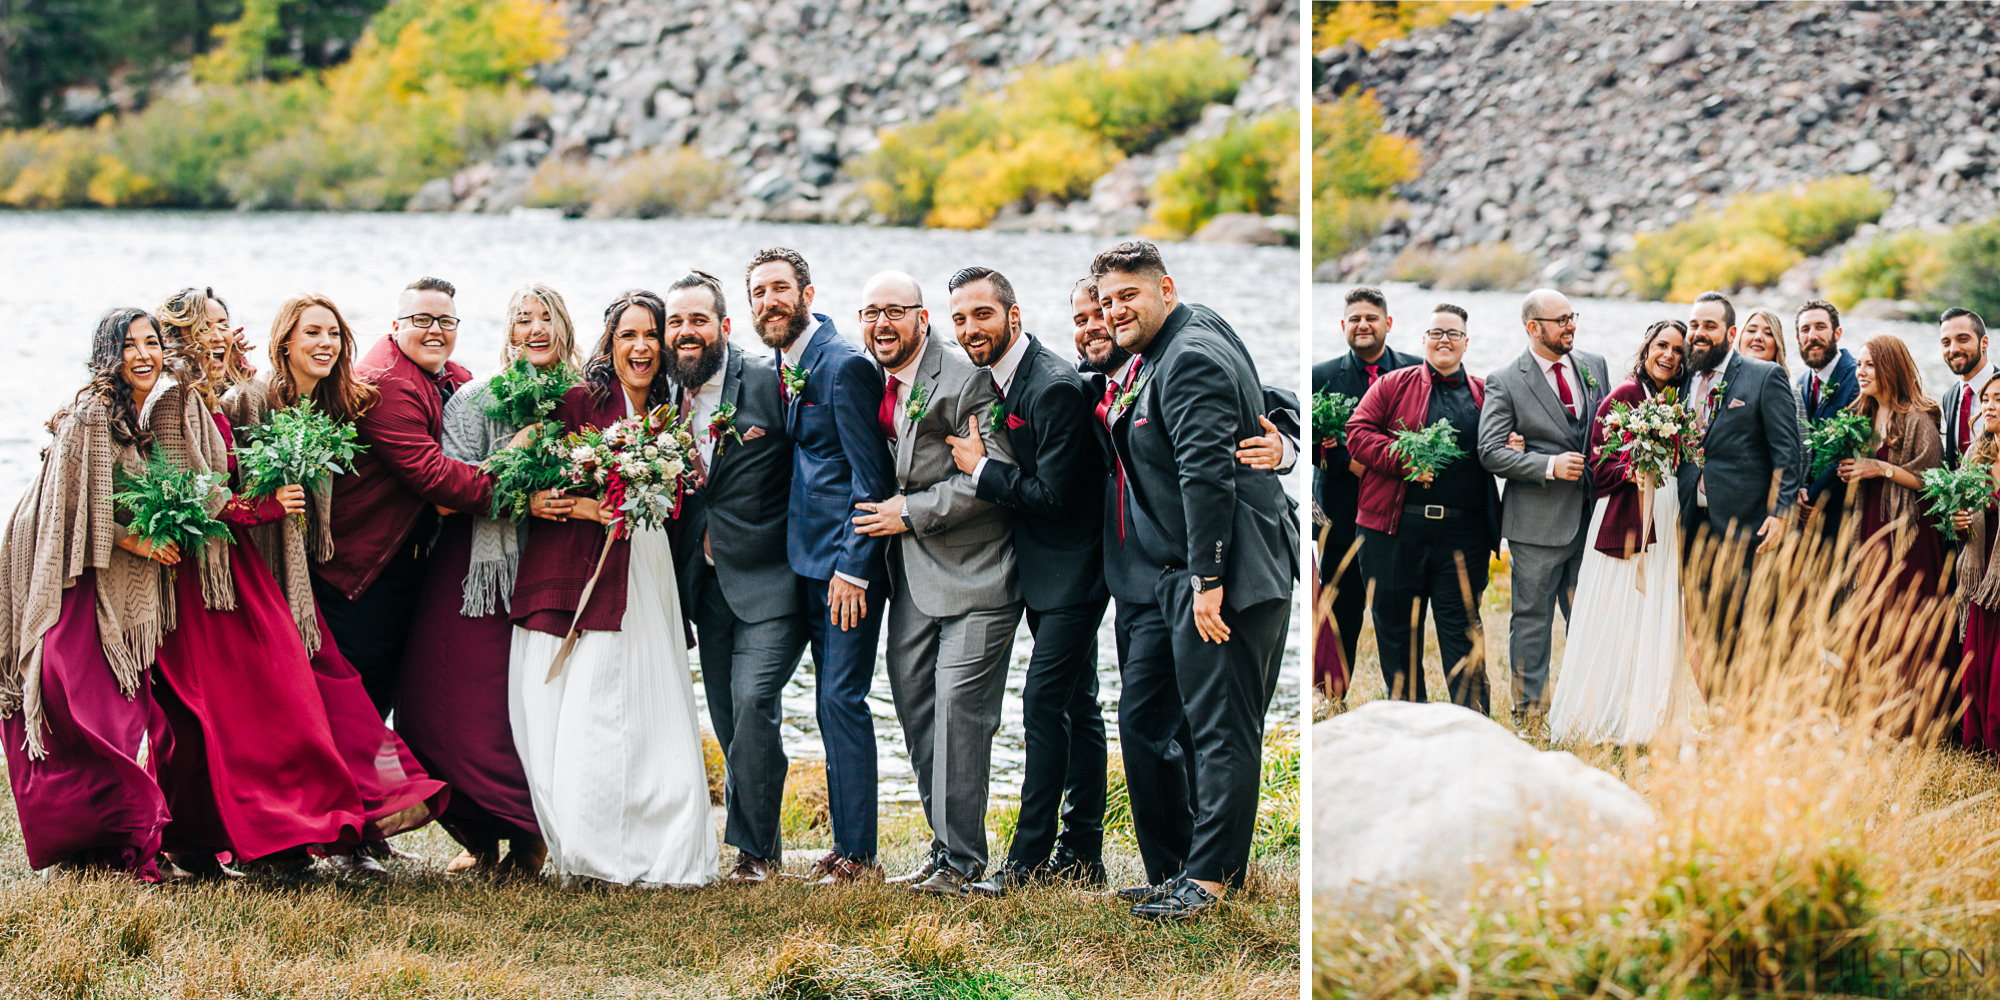 Twin-Lakes-wedding-Party.jpg